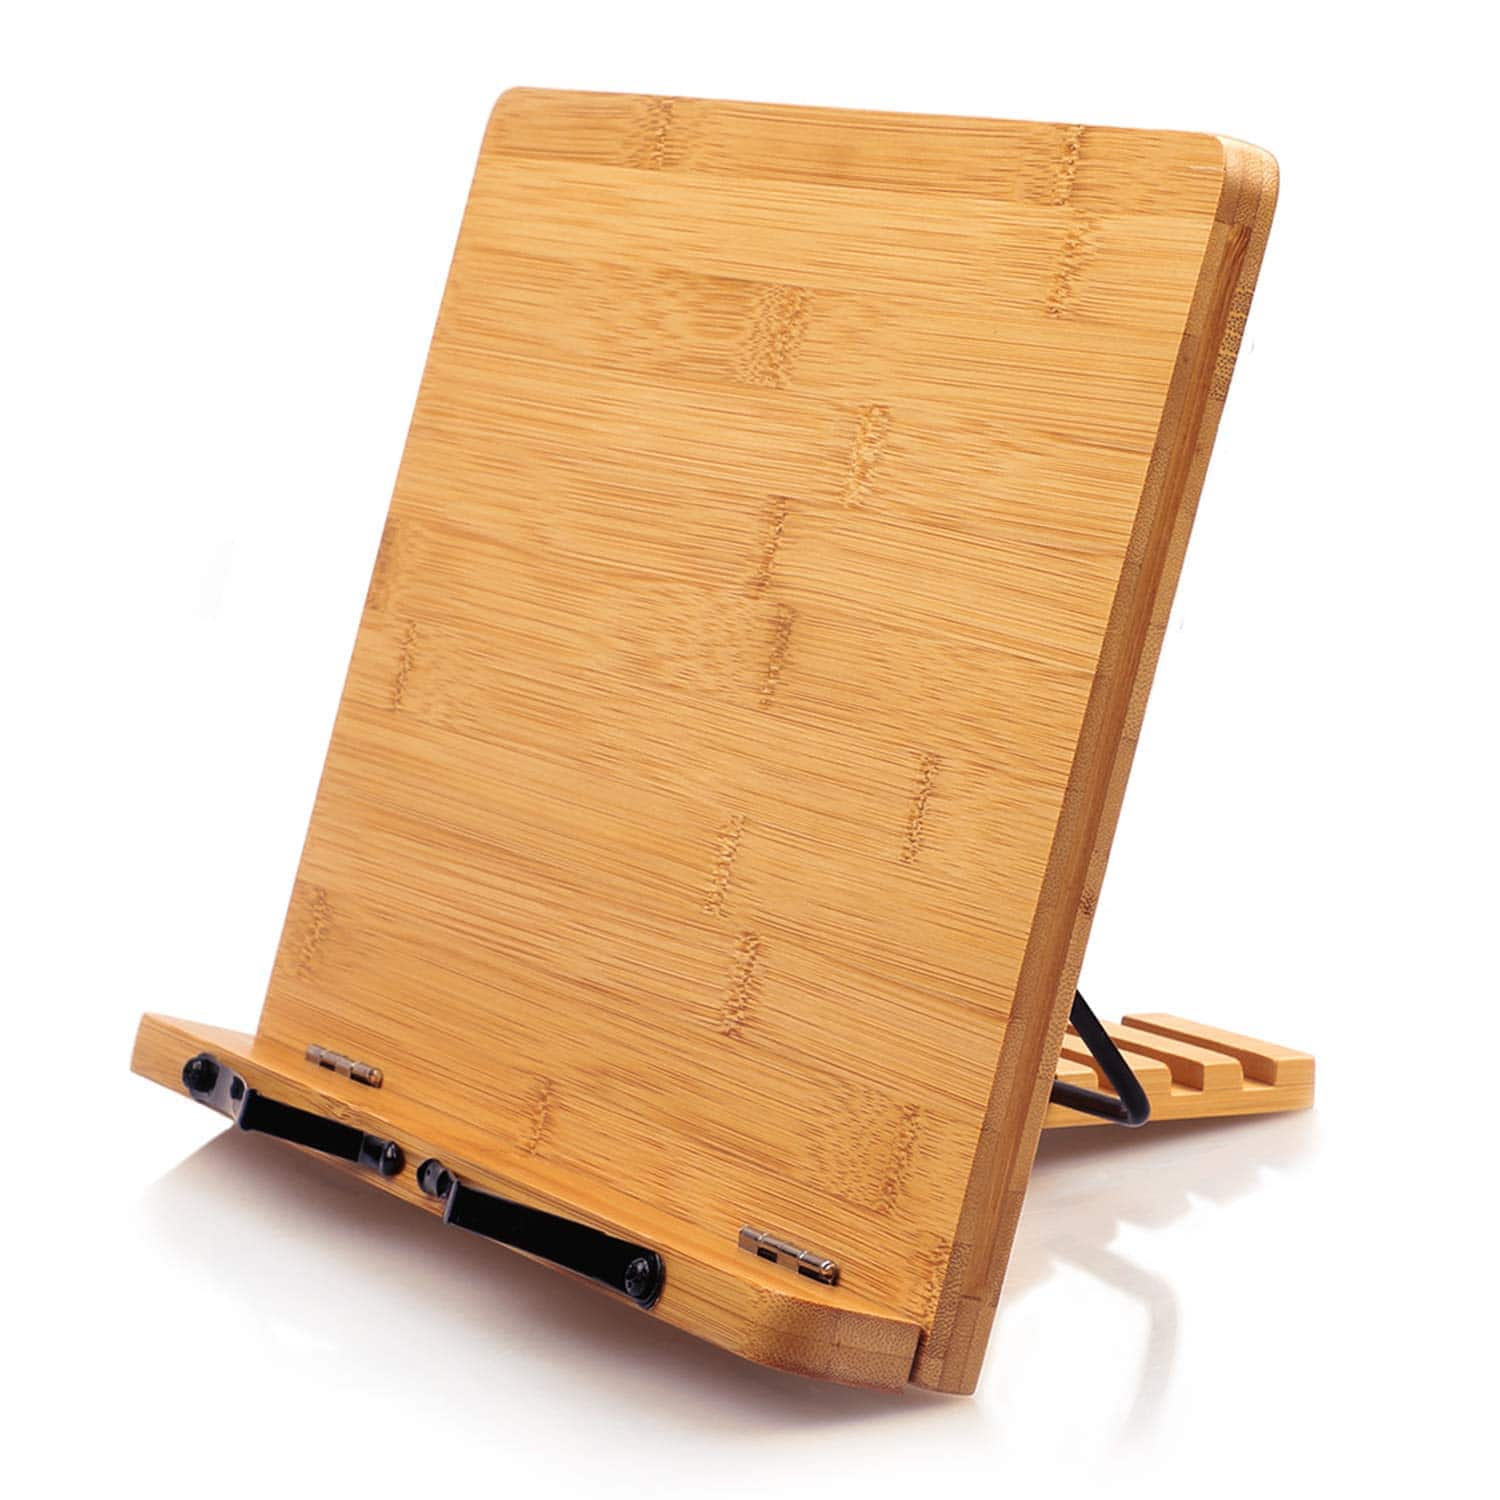 PIPISHELL Bamboo Cookbook Holder with 5 Adjustable Height for $7.98 + FSSS